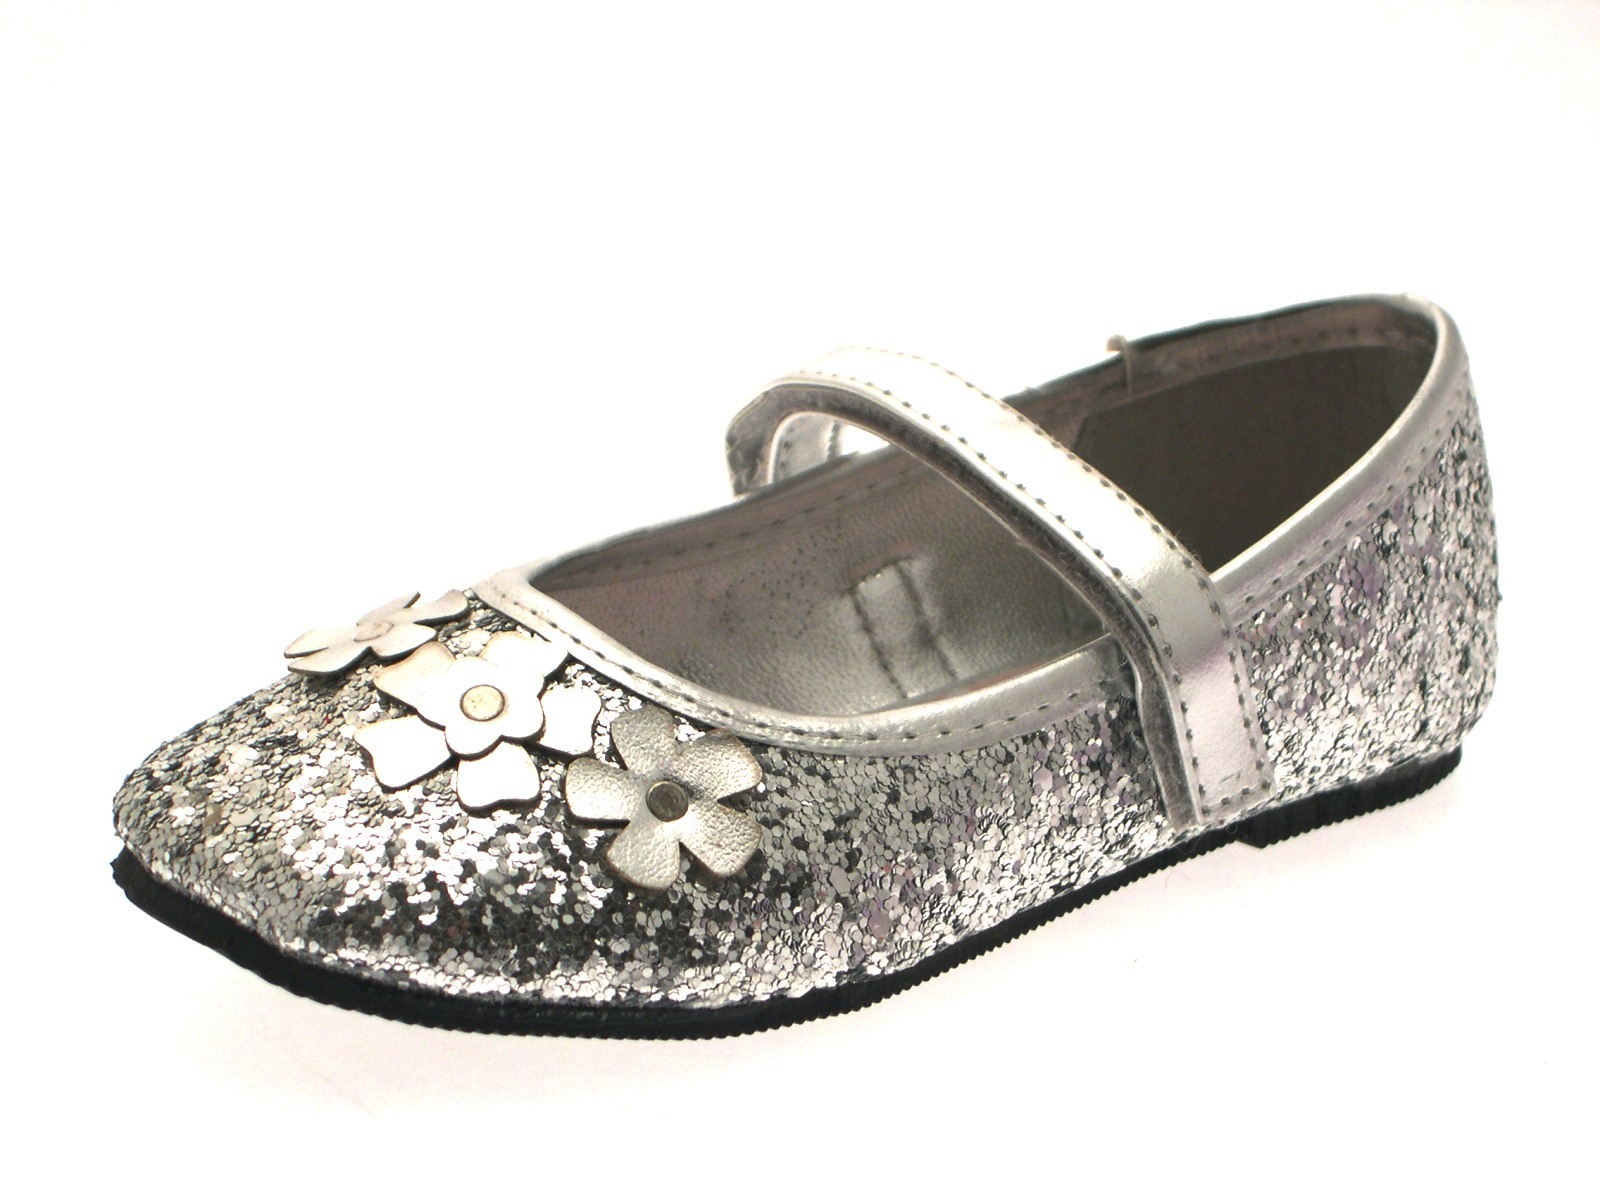 022c9c9877f9 Girls Glitter Flower Party Shoes Mary Janes Flat Ballet Pumps Kids ...